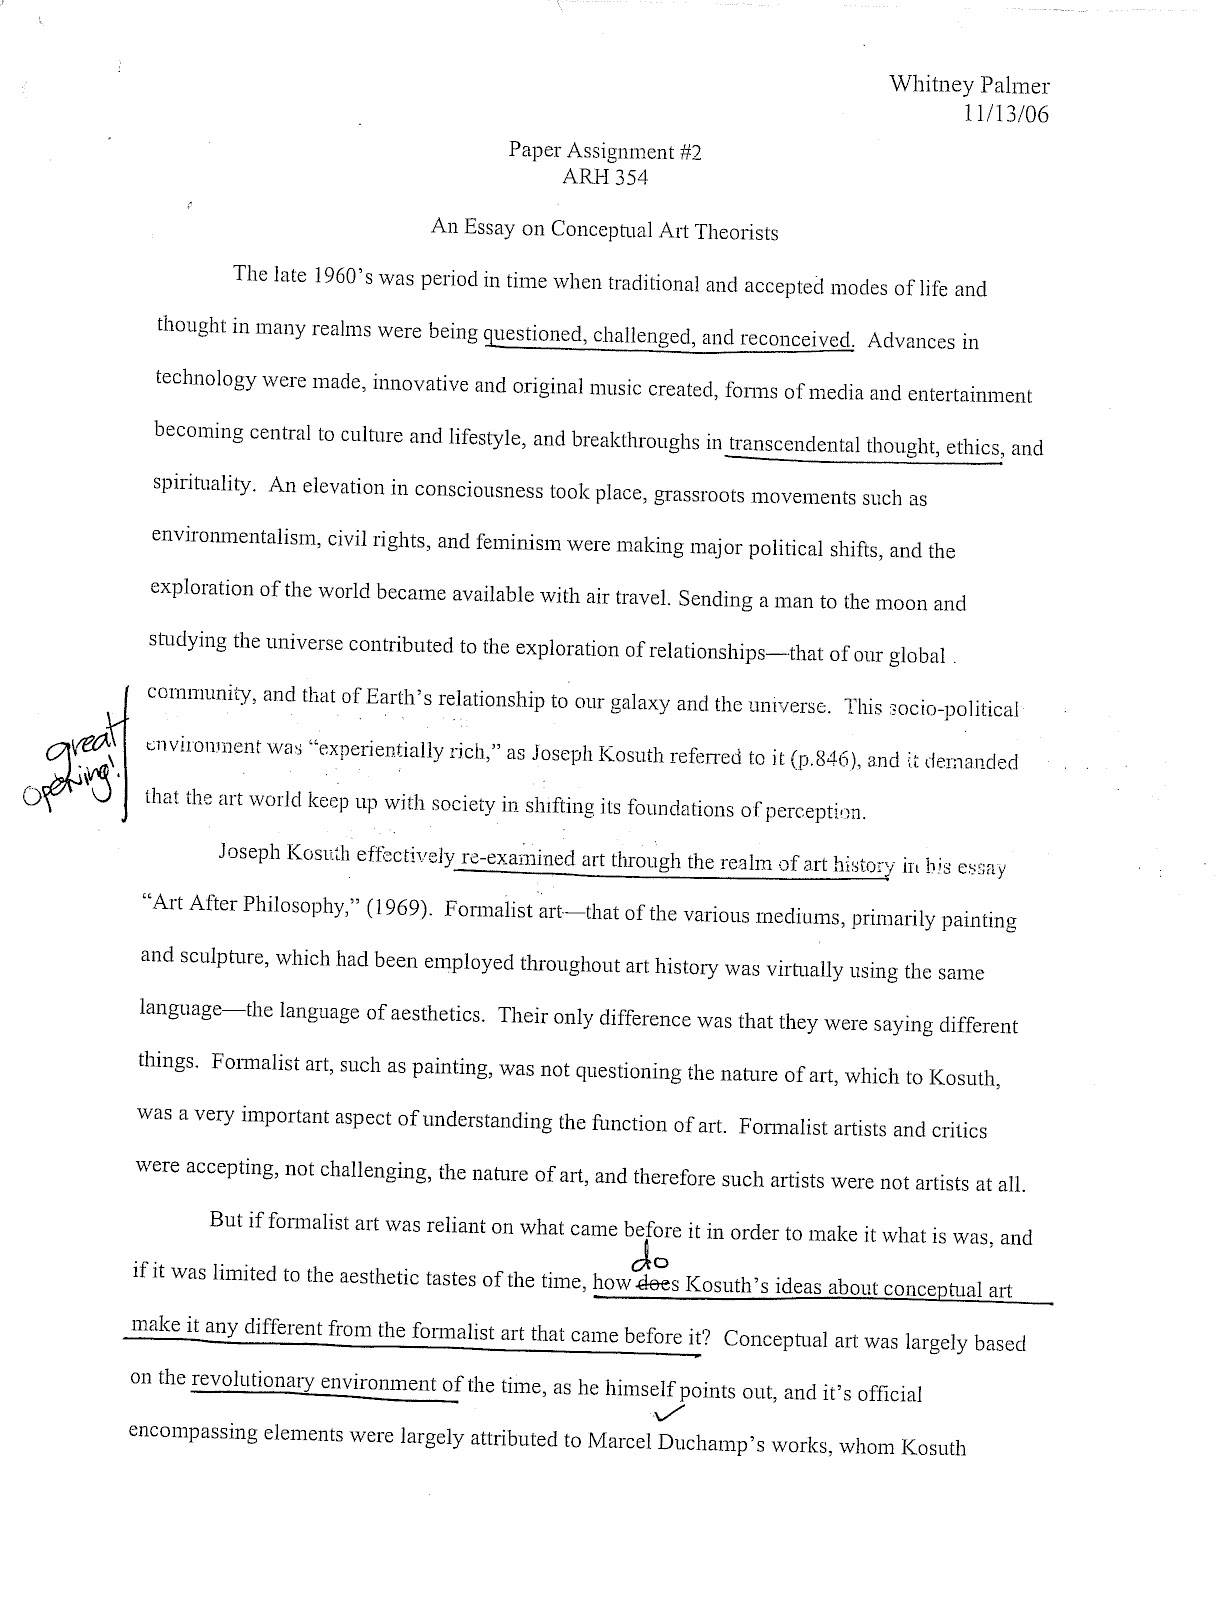 essay on art college essay art art college essay essay about art art history essays art history essays compucenter the aim of this essay from art history fall